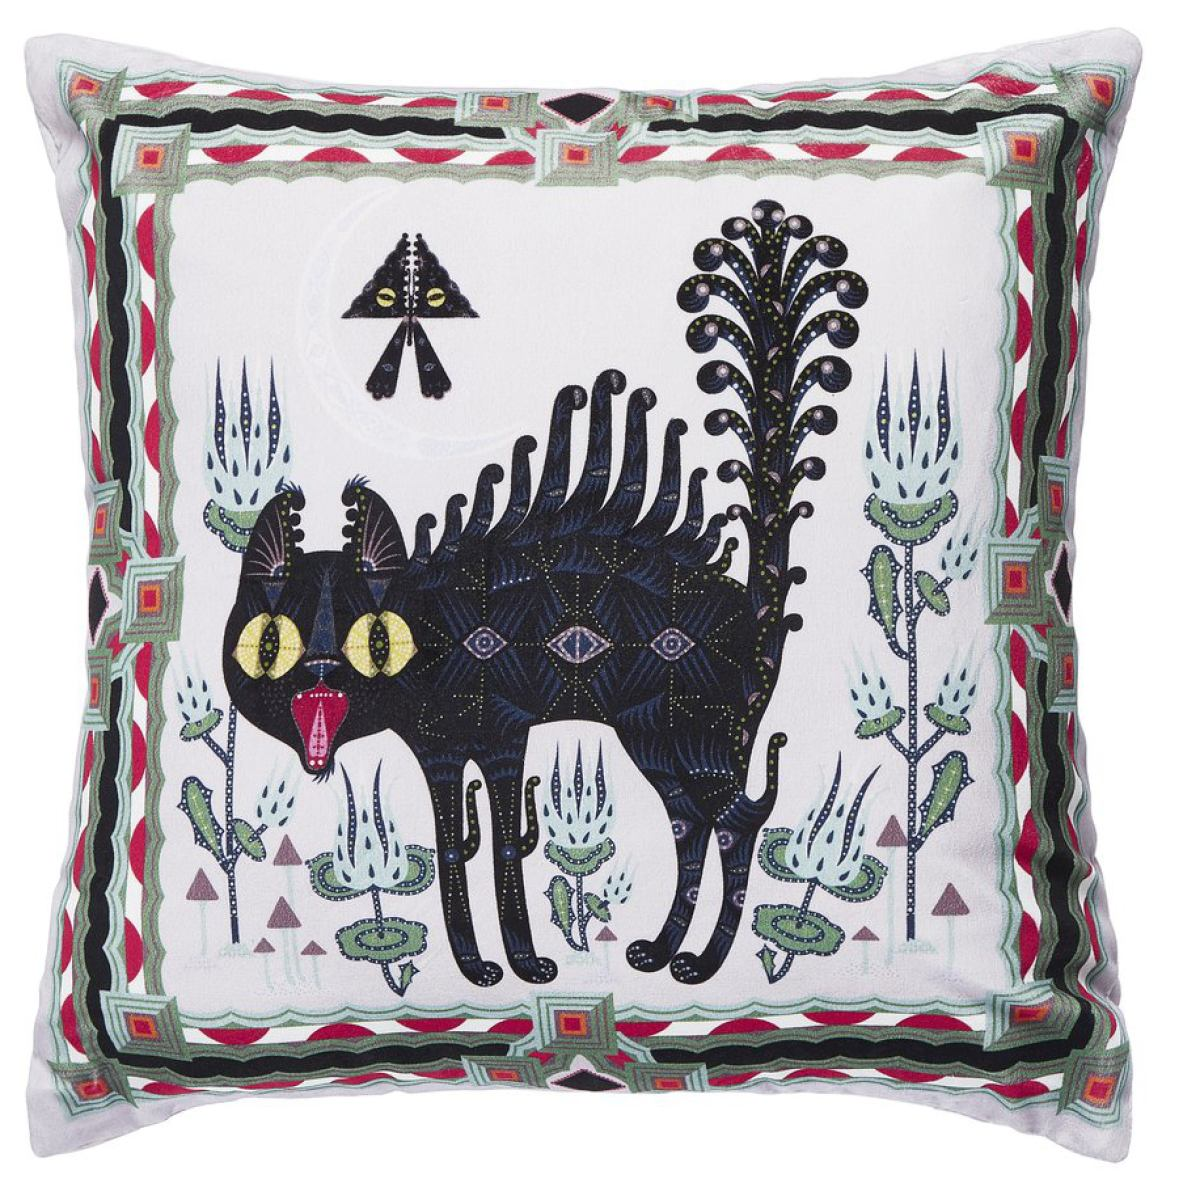 Charming sofa cushion – front side